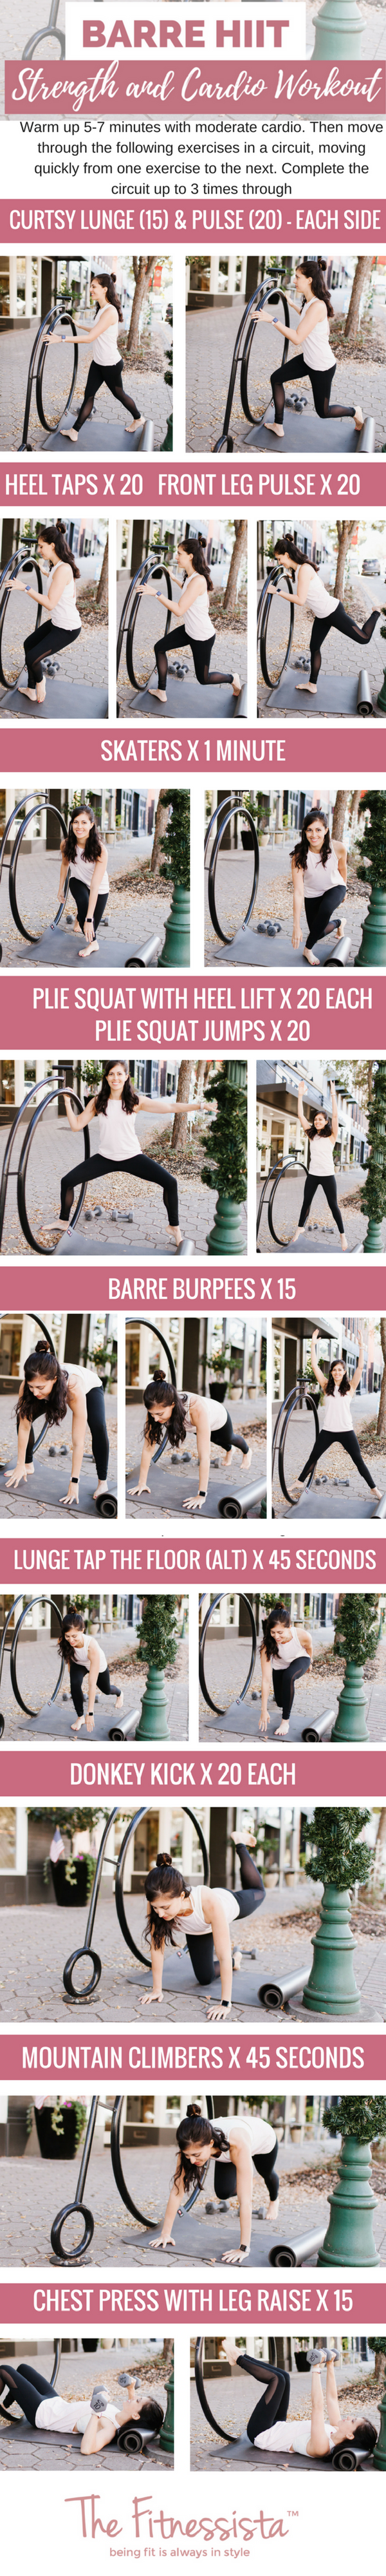 A Barre HIIT workout that combines sweaty cardio intervals with muscular endurance training. Get super lean muscles without needing to lift heavy weights! You can do this one anywhere. fitnessista.com